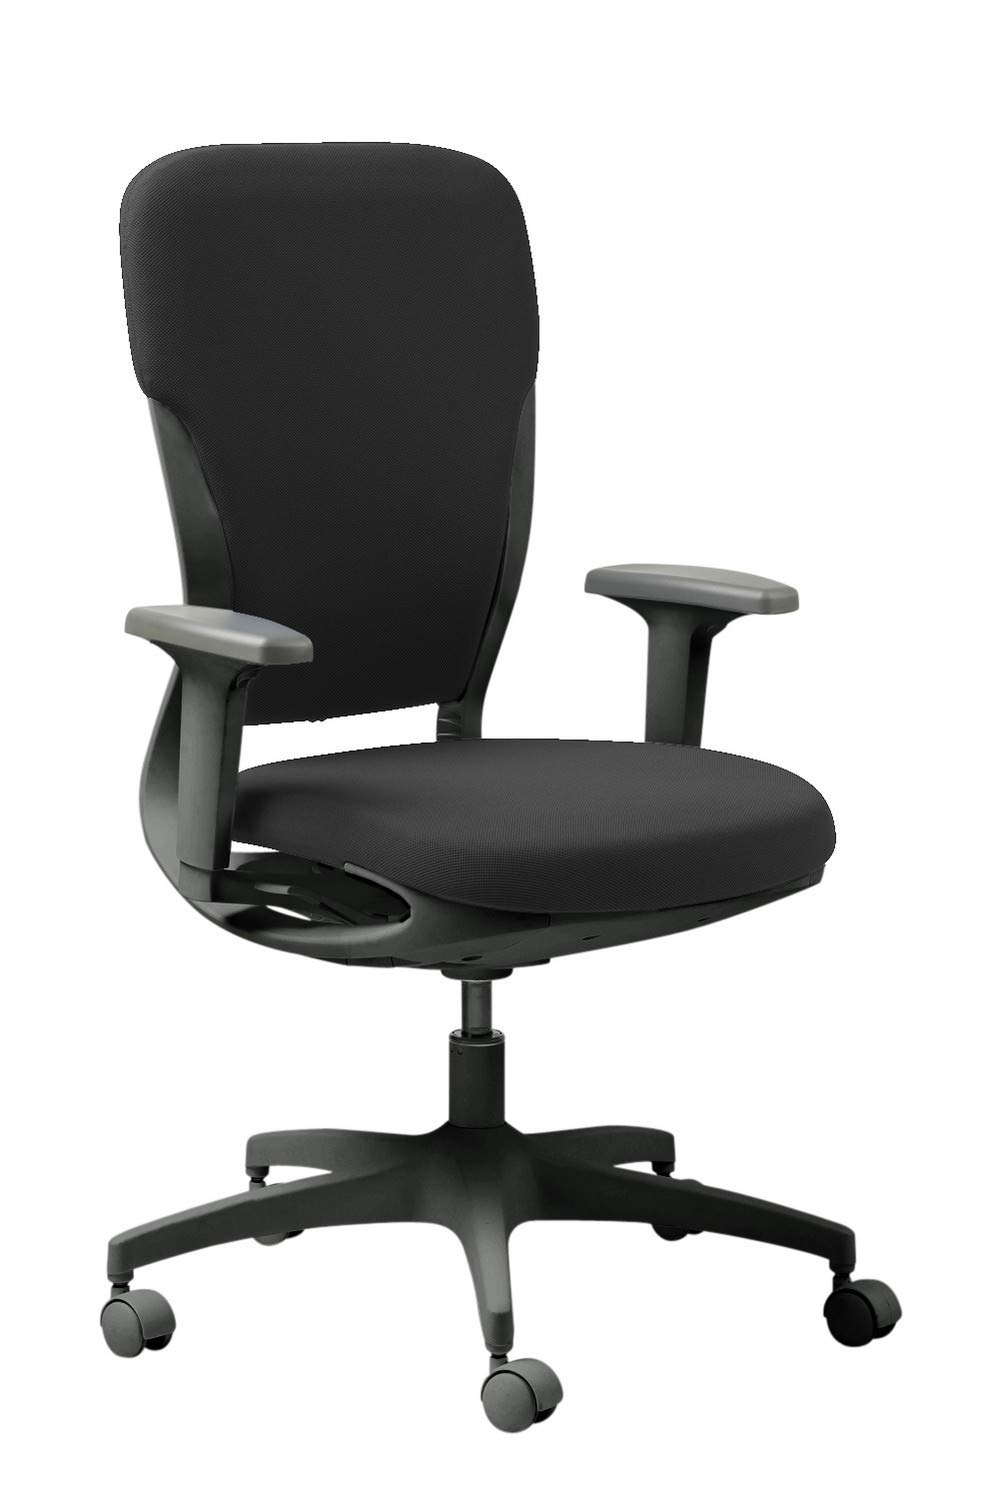 Godrej Interio Motion Ergonomic Motion High Back Executive Chair review